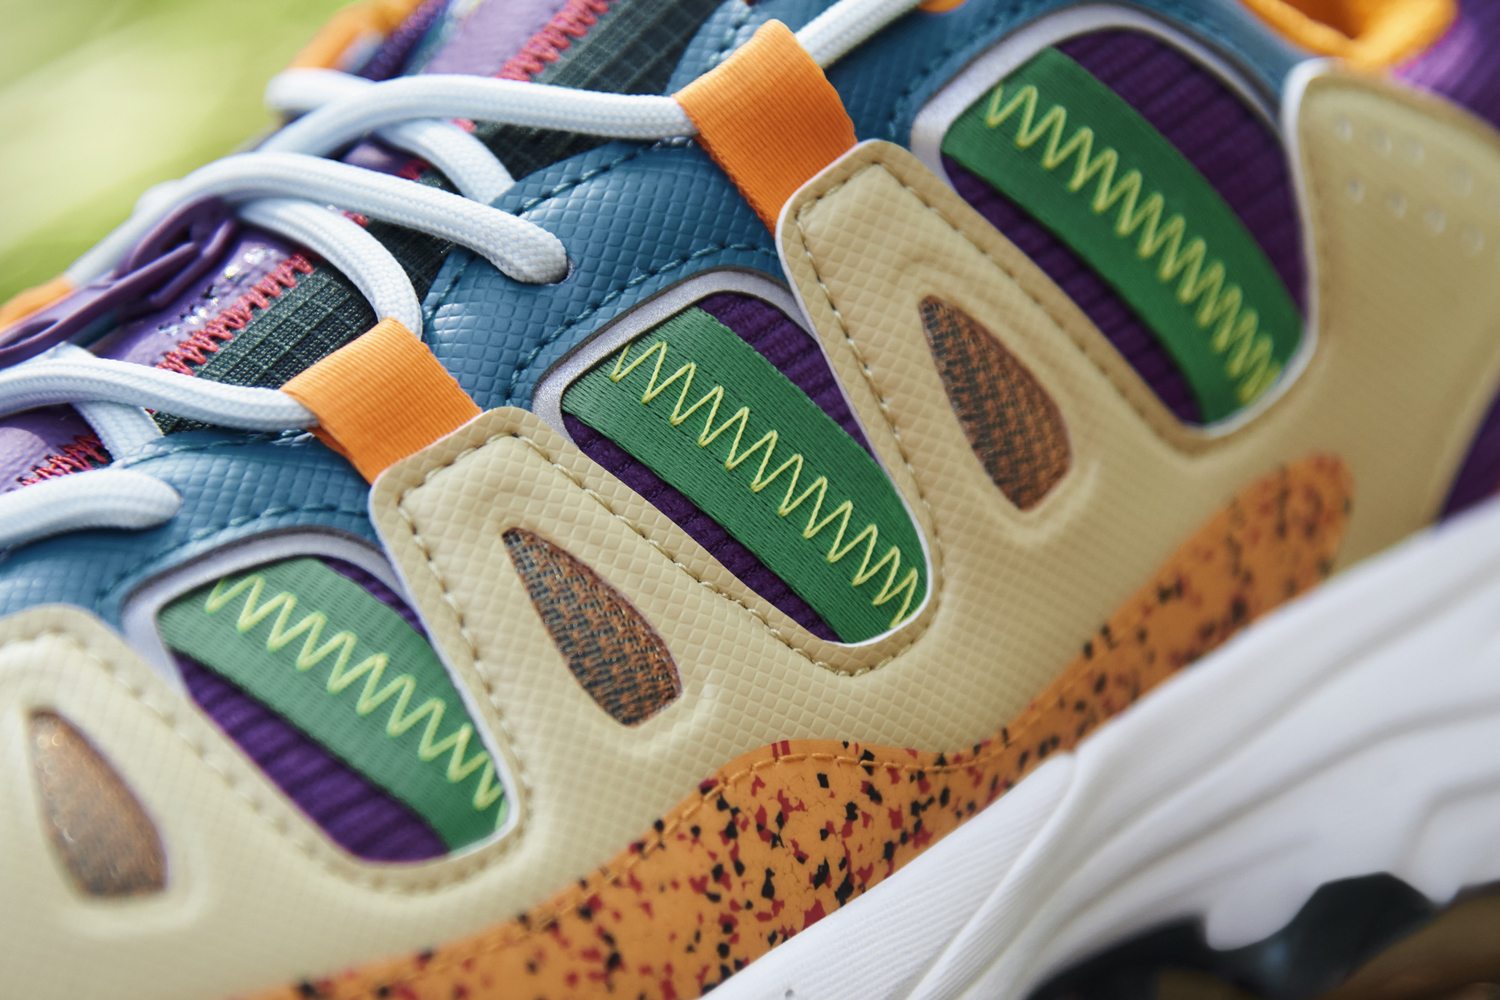 Sean-wotherspoon Adidas originals superturf adventure sw jiminey cricket disney vegan sneakers release zipper pouch purple blue green orange recycled polyester materials